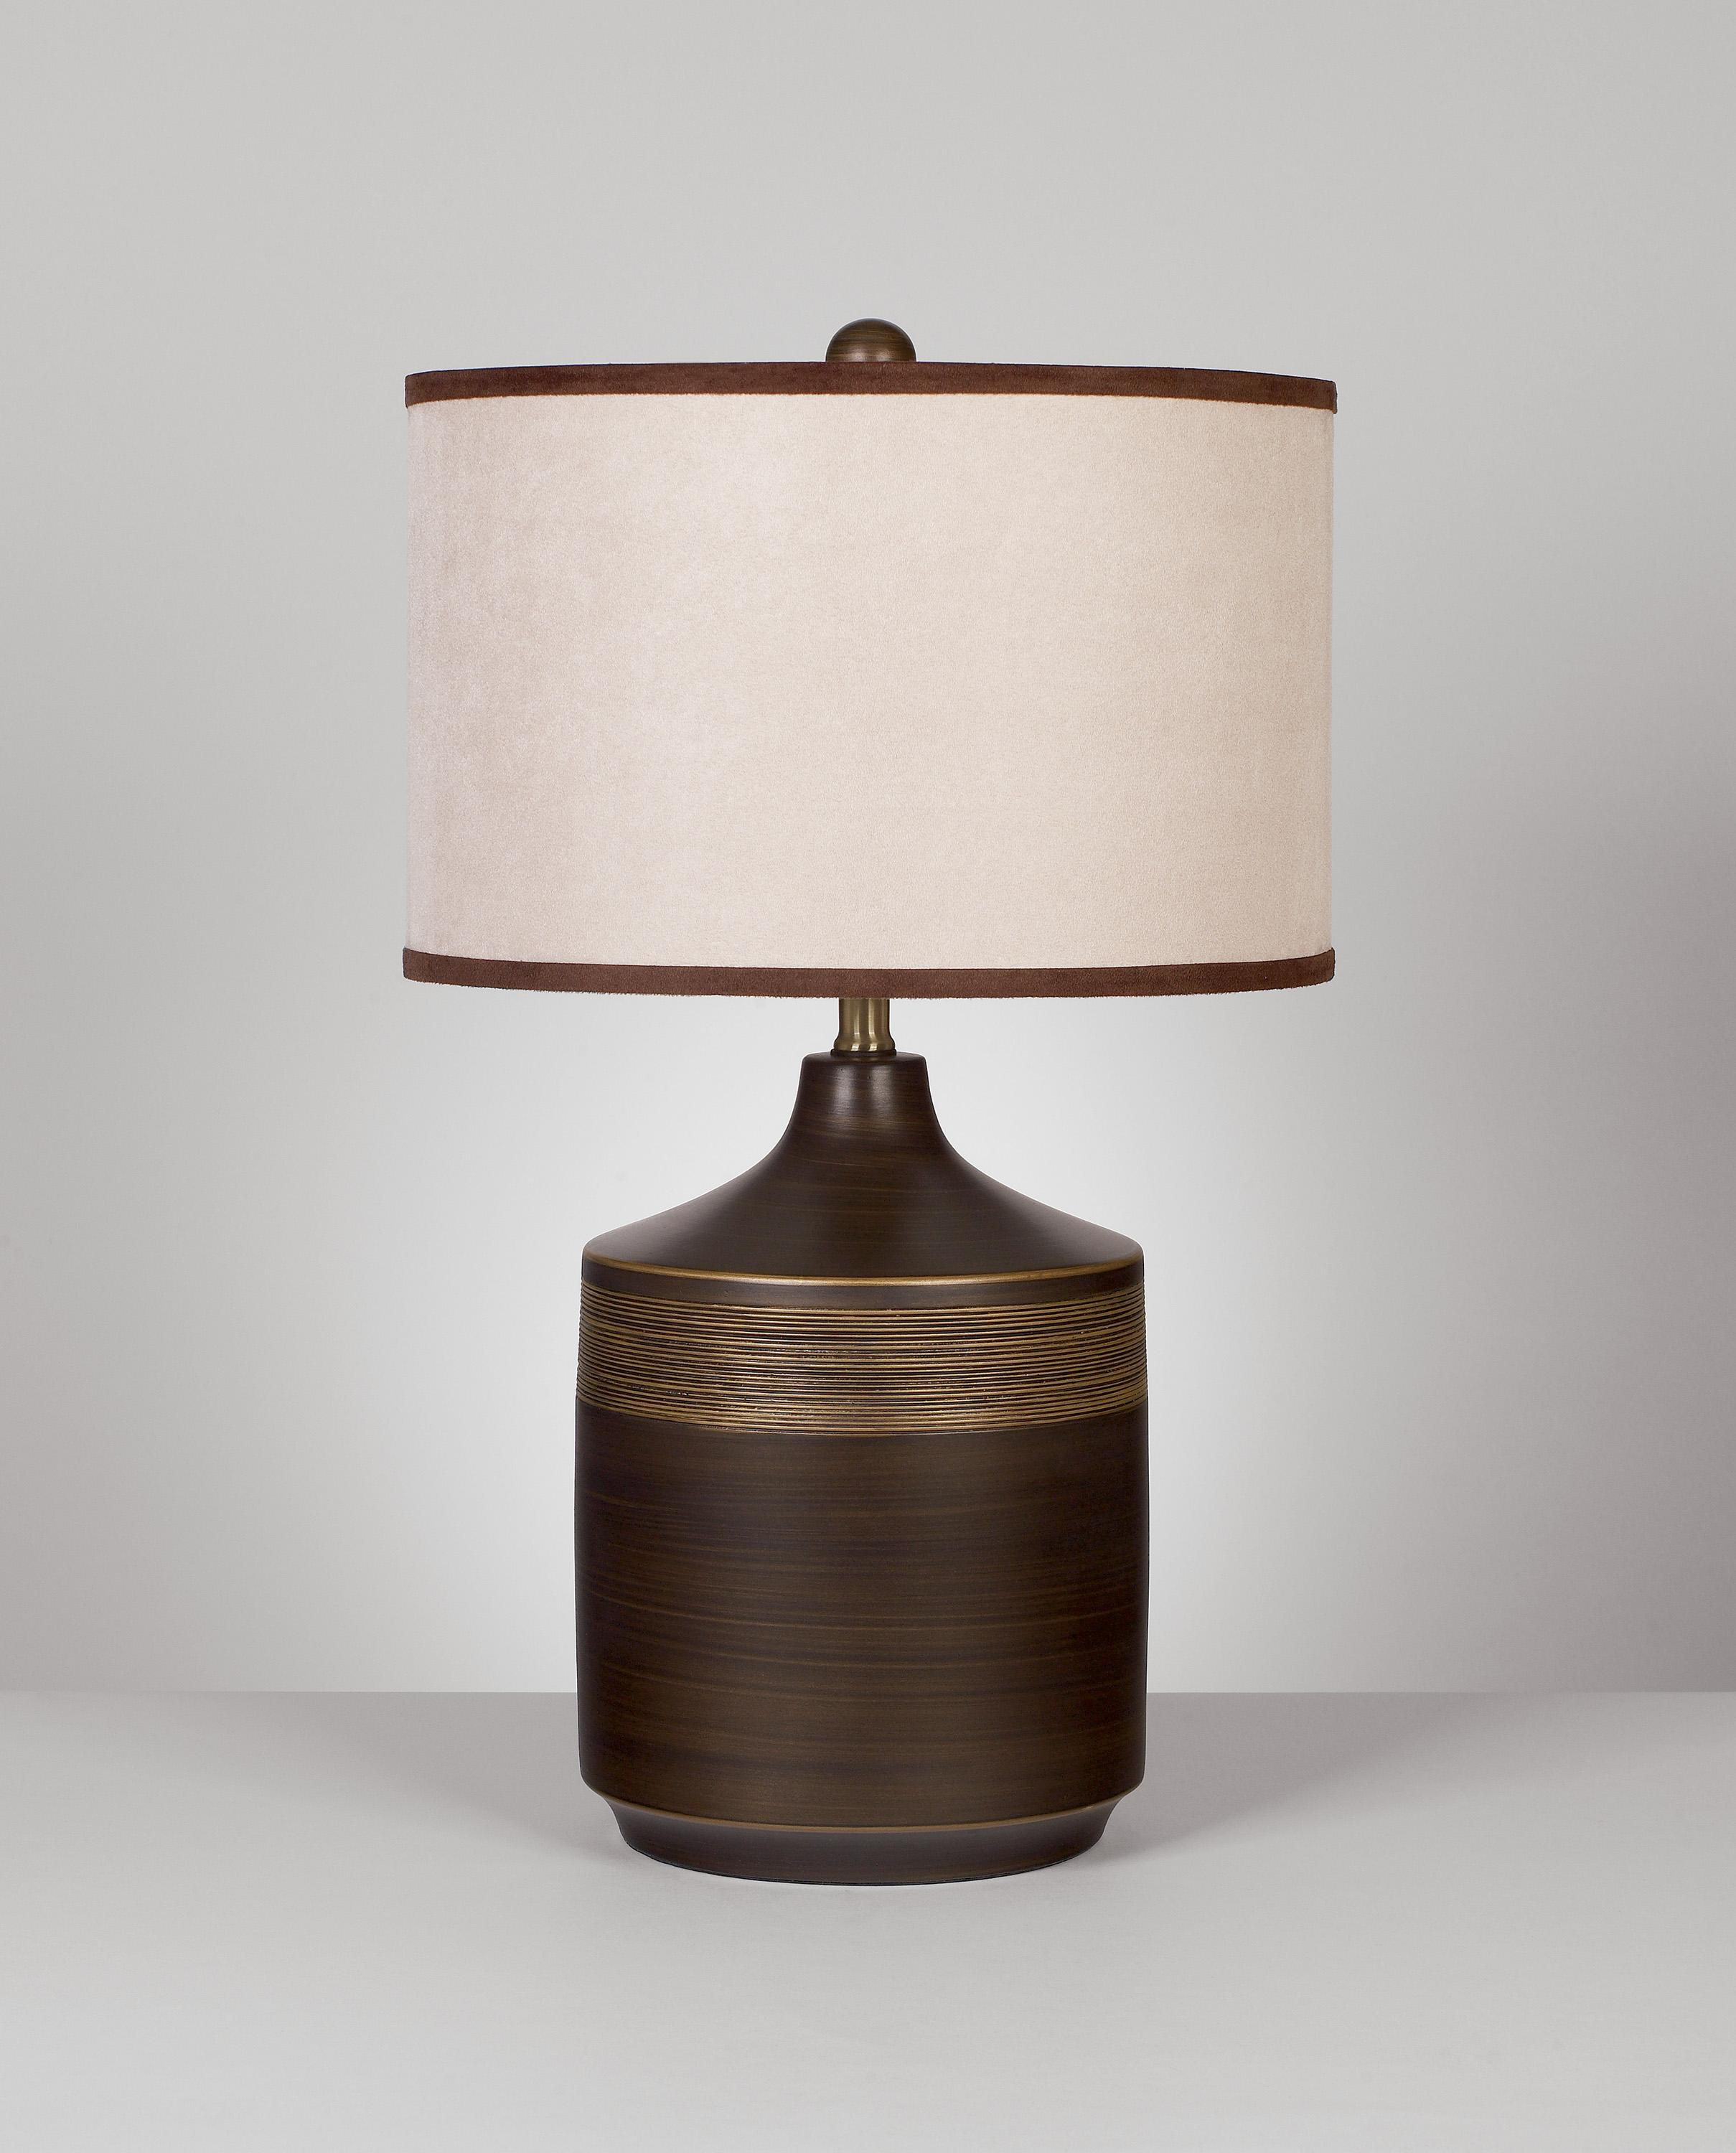 Signature Design by Ashley Lamps - Contemporary Set of 2 Karissa Table Lamps - Item Number: L129914